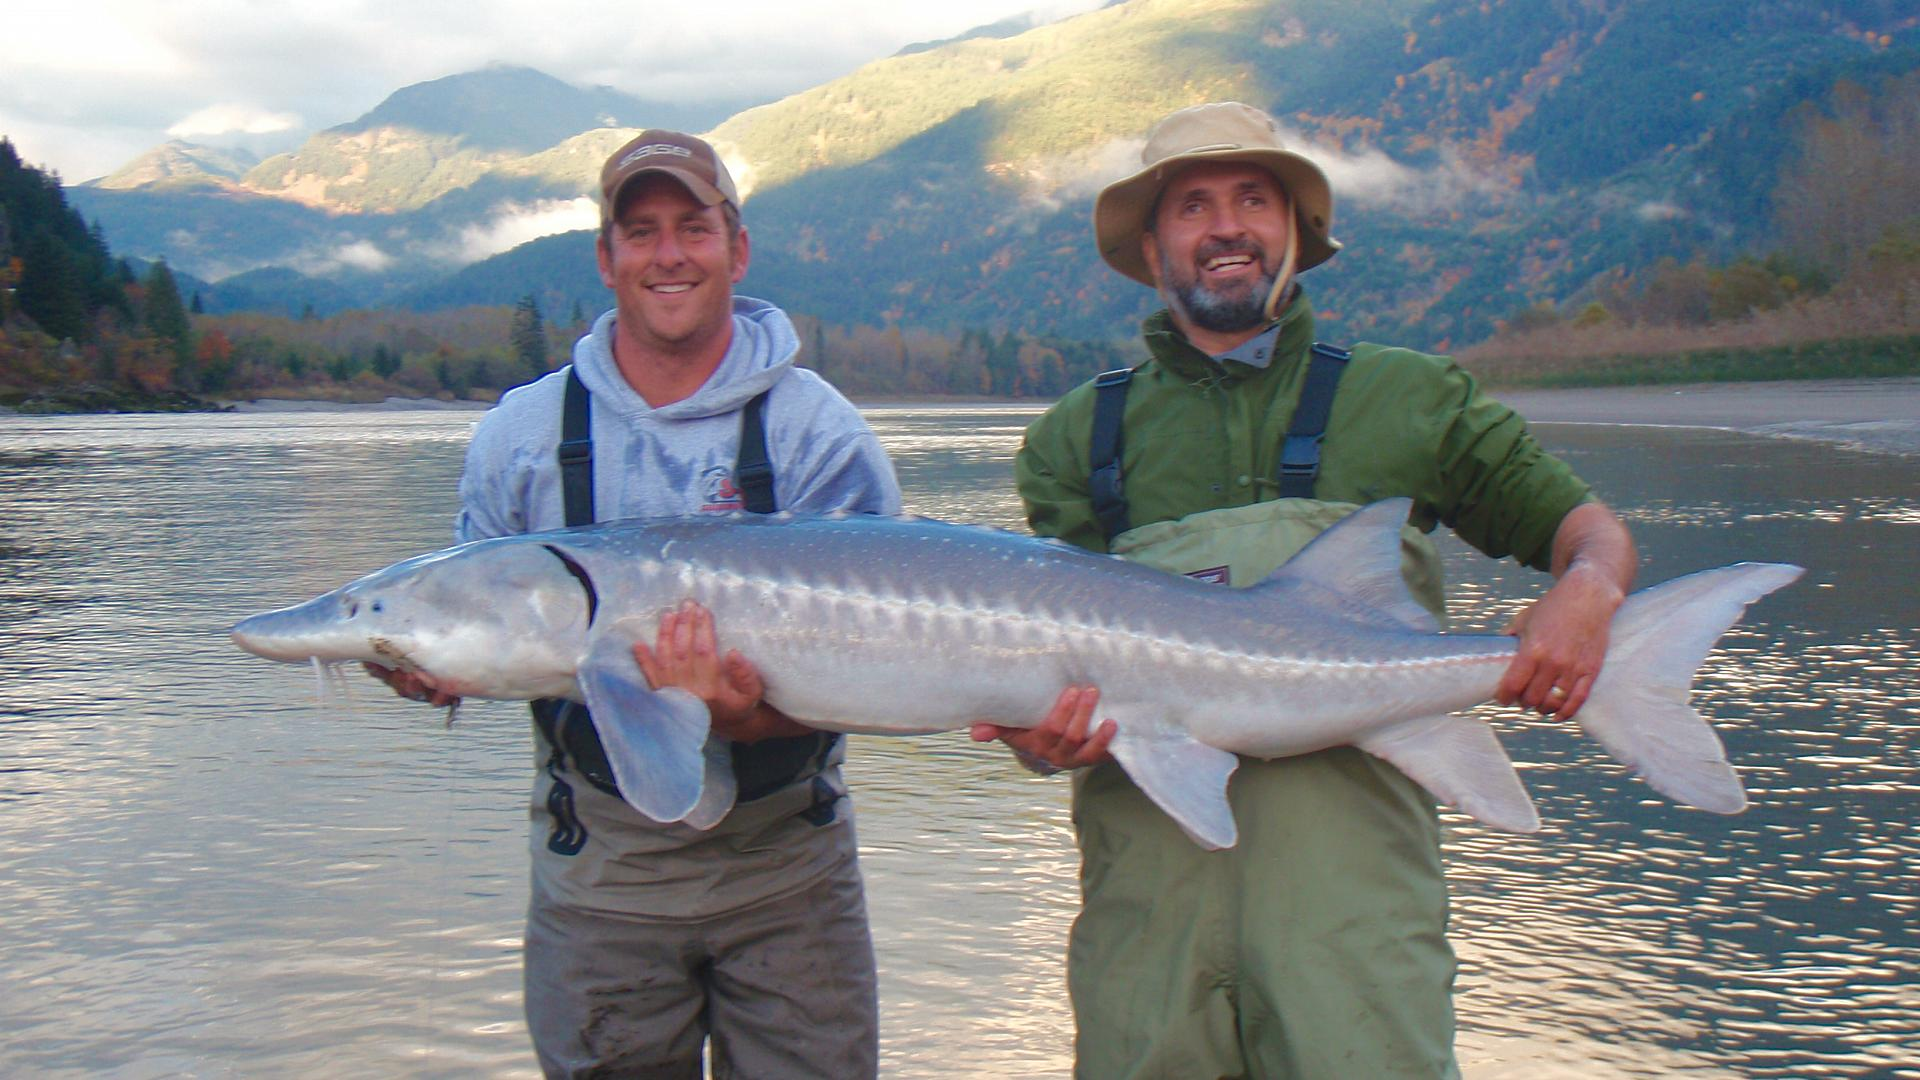 The author (above right) with fishing guide Thomas Rutschmann, and a white sturgeon—a fish species that was in serious trouble, but is now recovering. Credit: Lawrence Gunther.